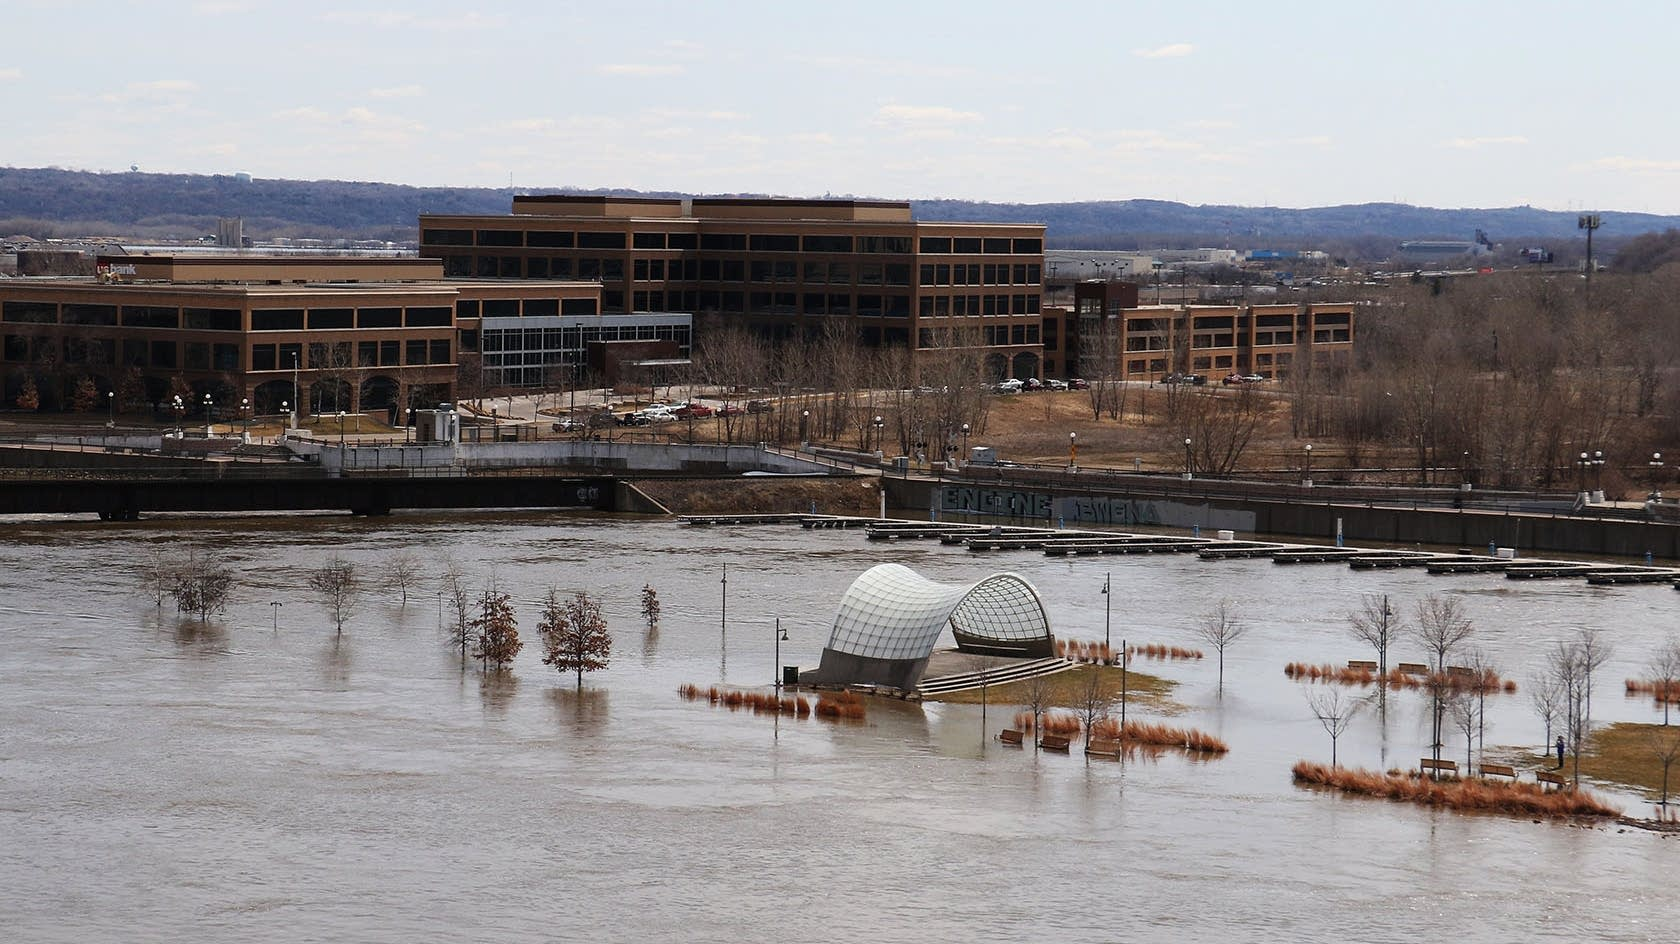 Floodwaters cover much of Raspberry Island